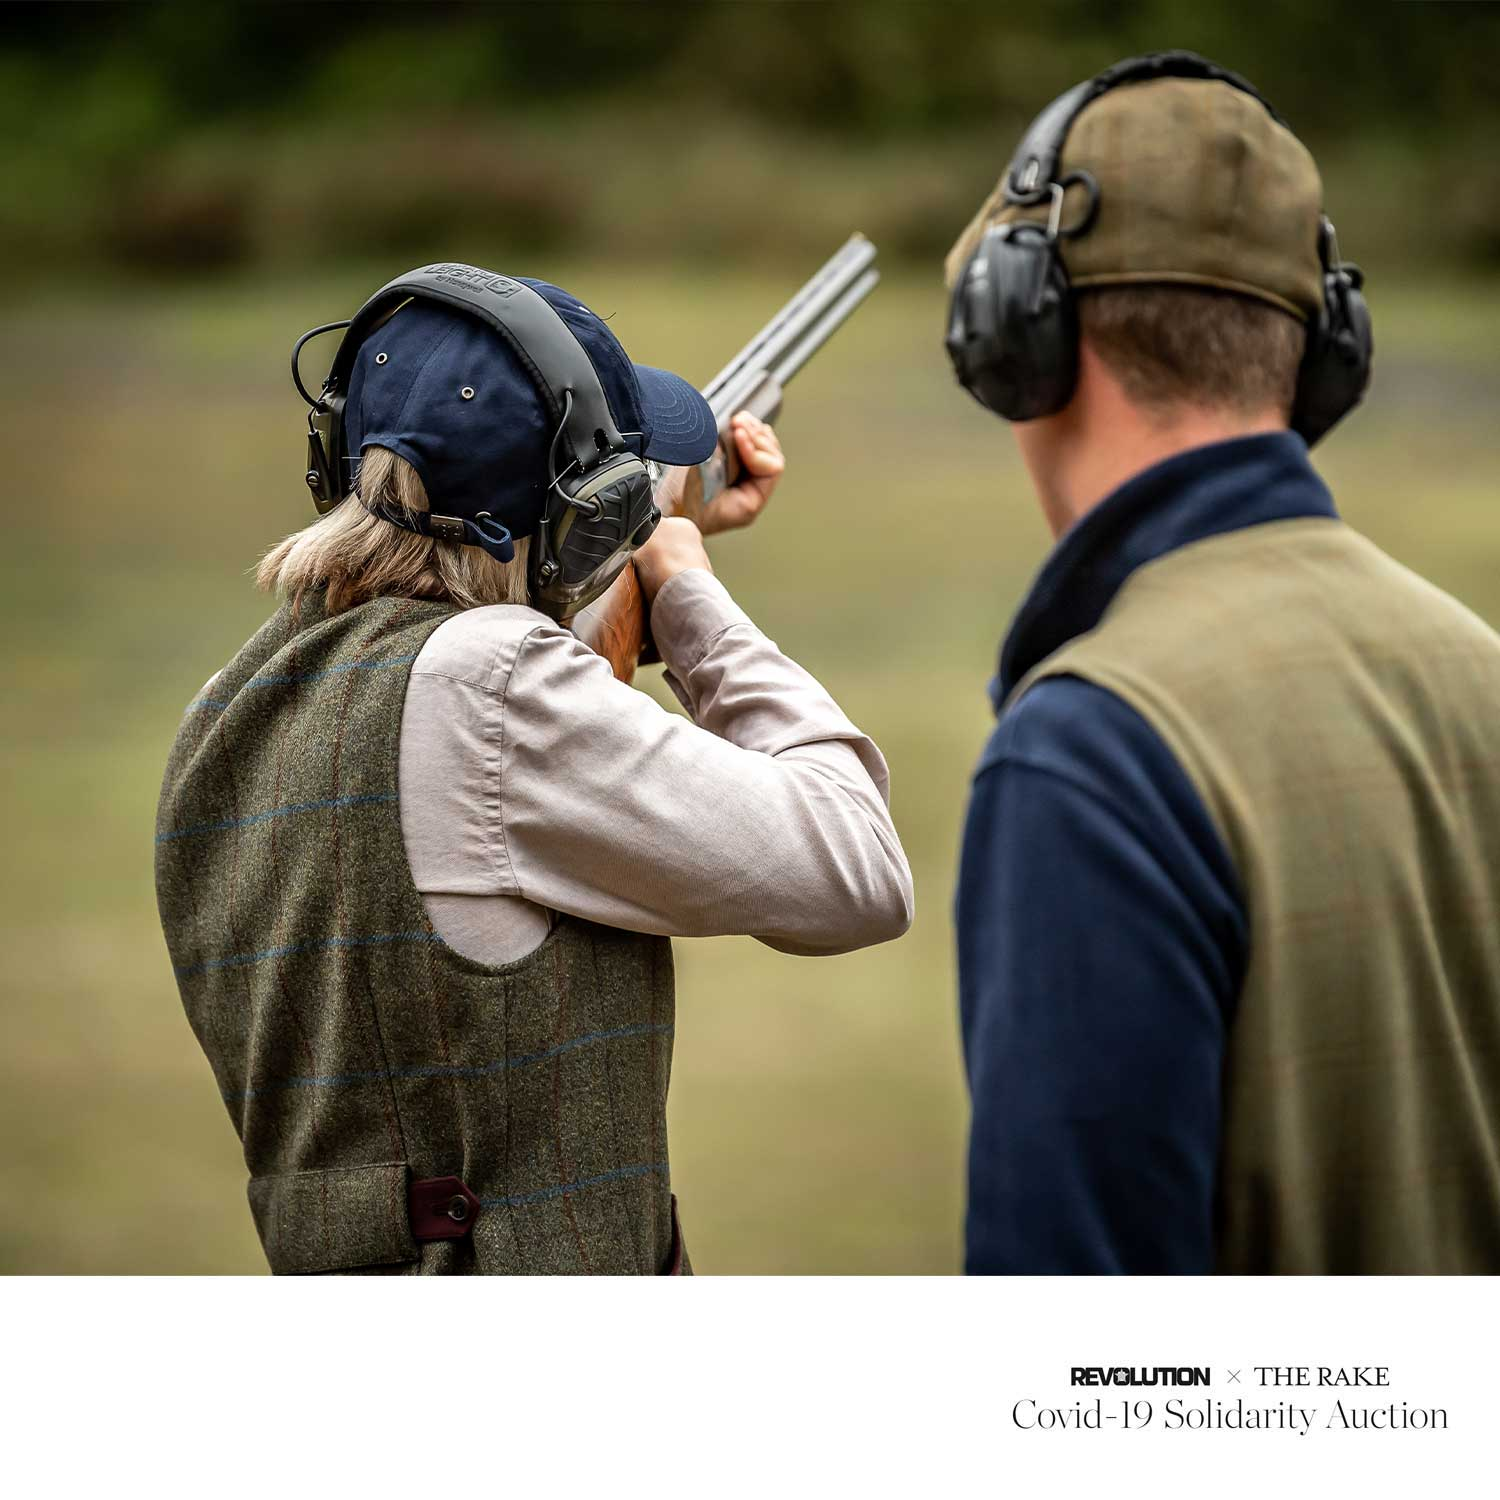 The Royal Berkshire Shooting School Shooting Experience for Revolution x The Rake Covid-19 Solidarity Auction